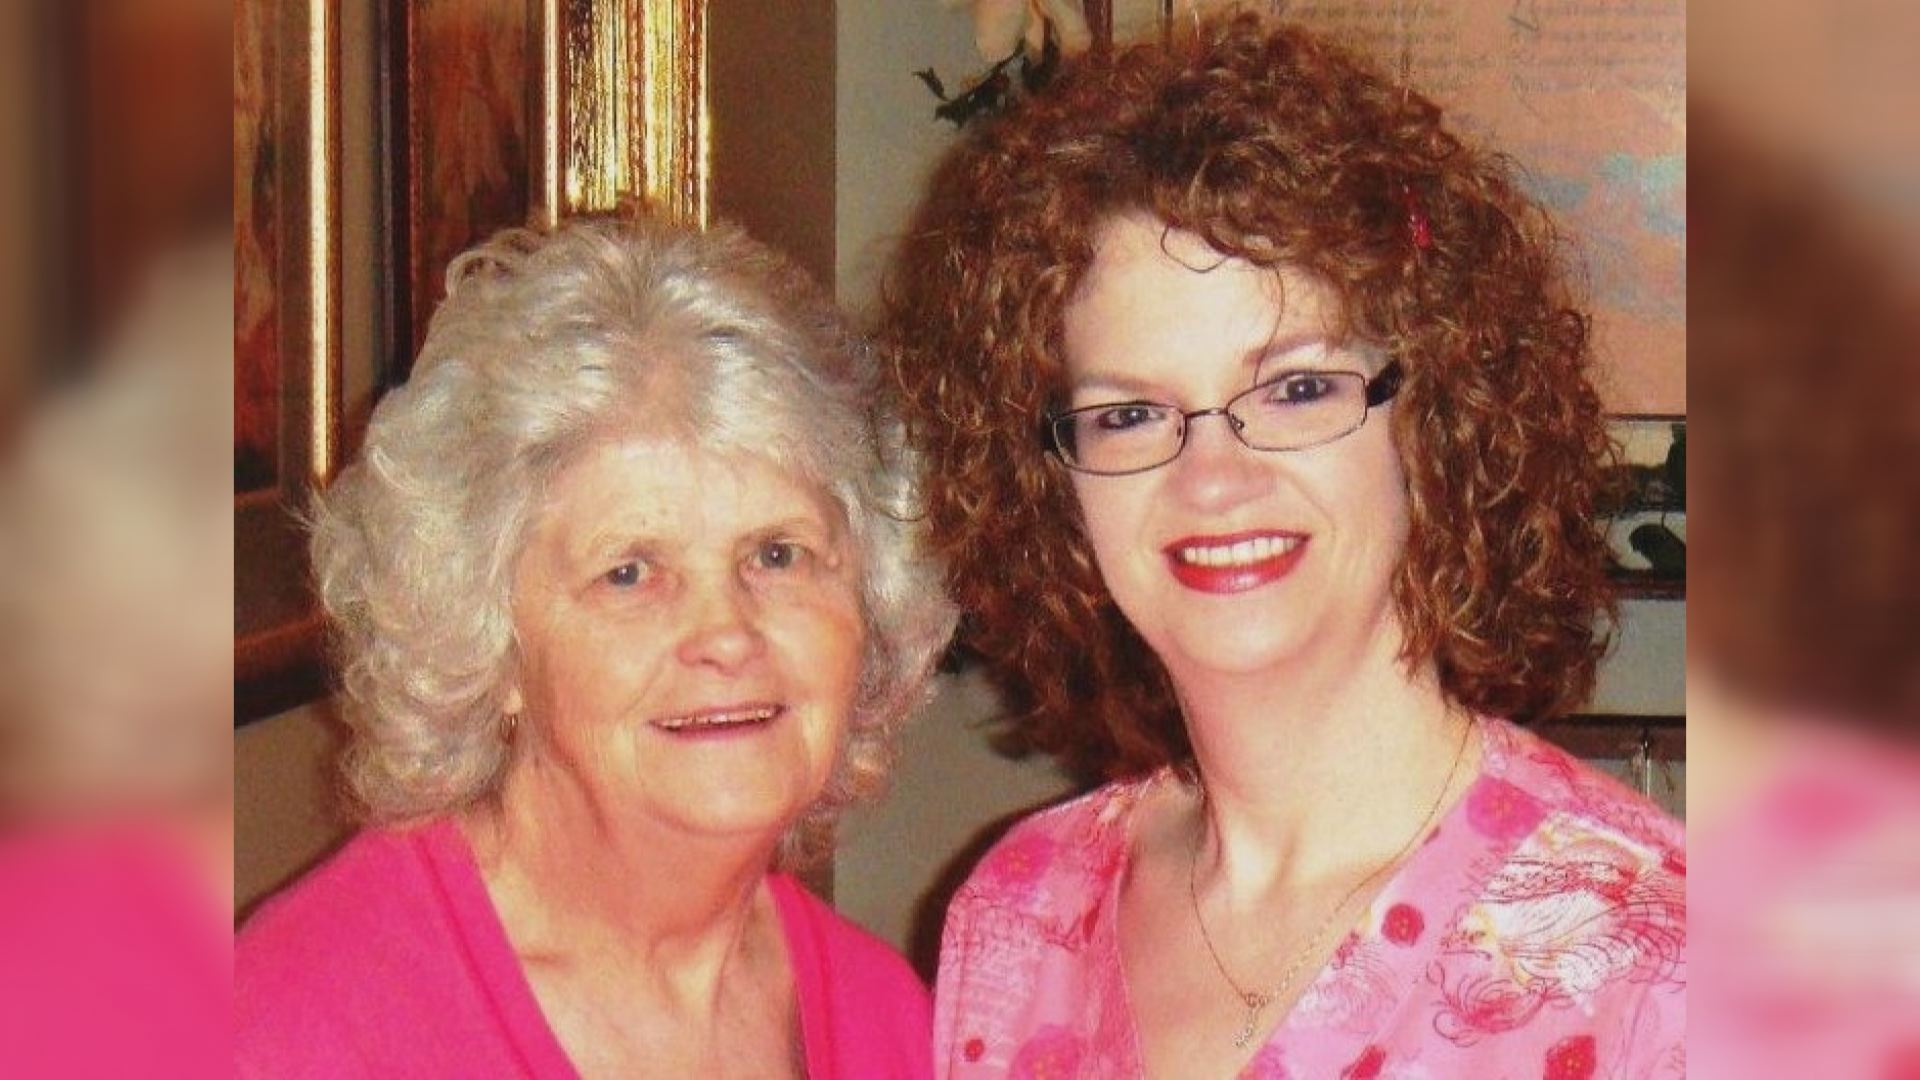 Sue Dobbins Delph (left) with her daughter Rebecaa Dobbins Bellamy (right). (Courtesy of Rebecca Bellamy/WCYB)